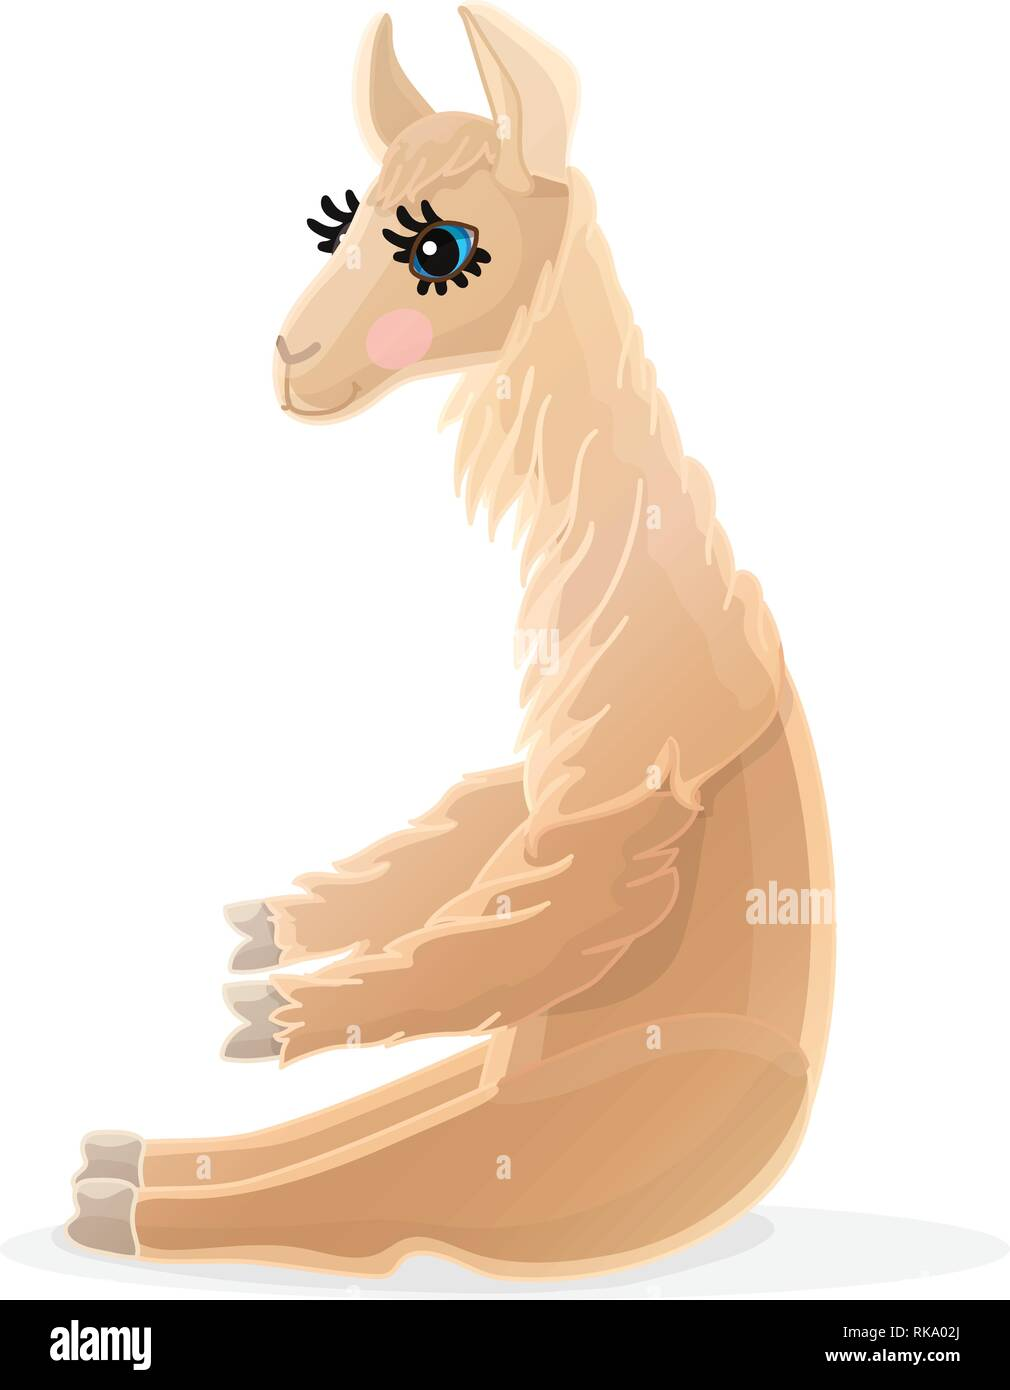 vector cartoon animal clipart: llama - Stock Vector